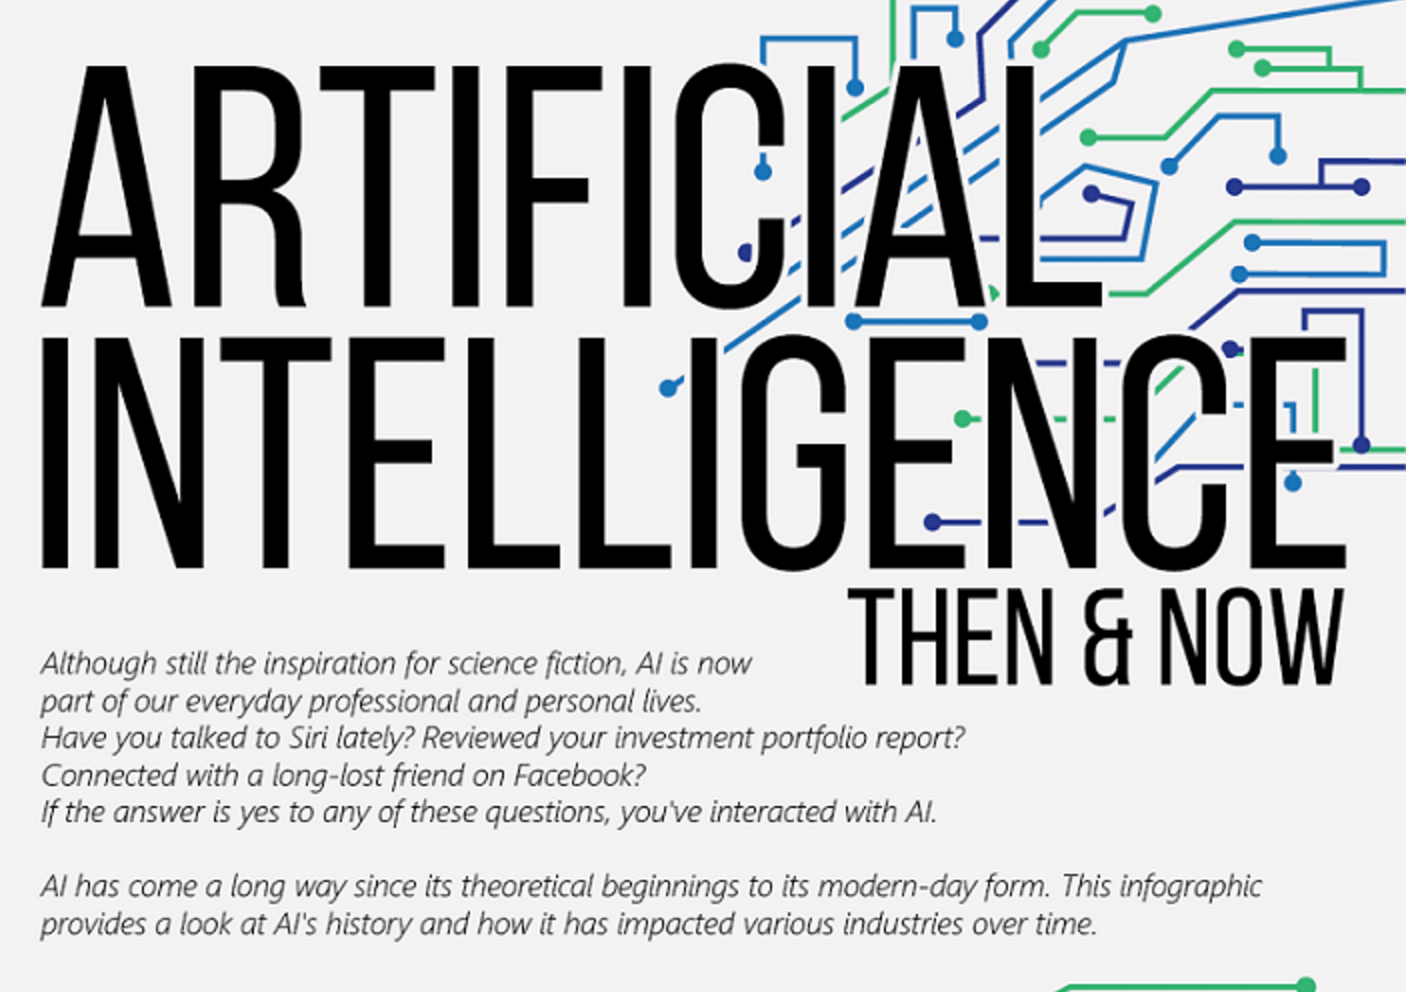 The Evolution Of Artificial Intelligence - infographic